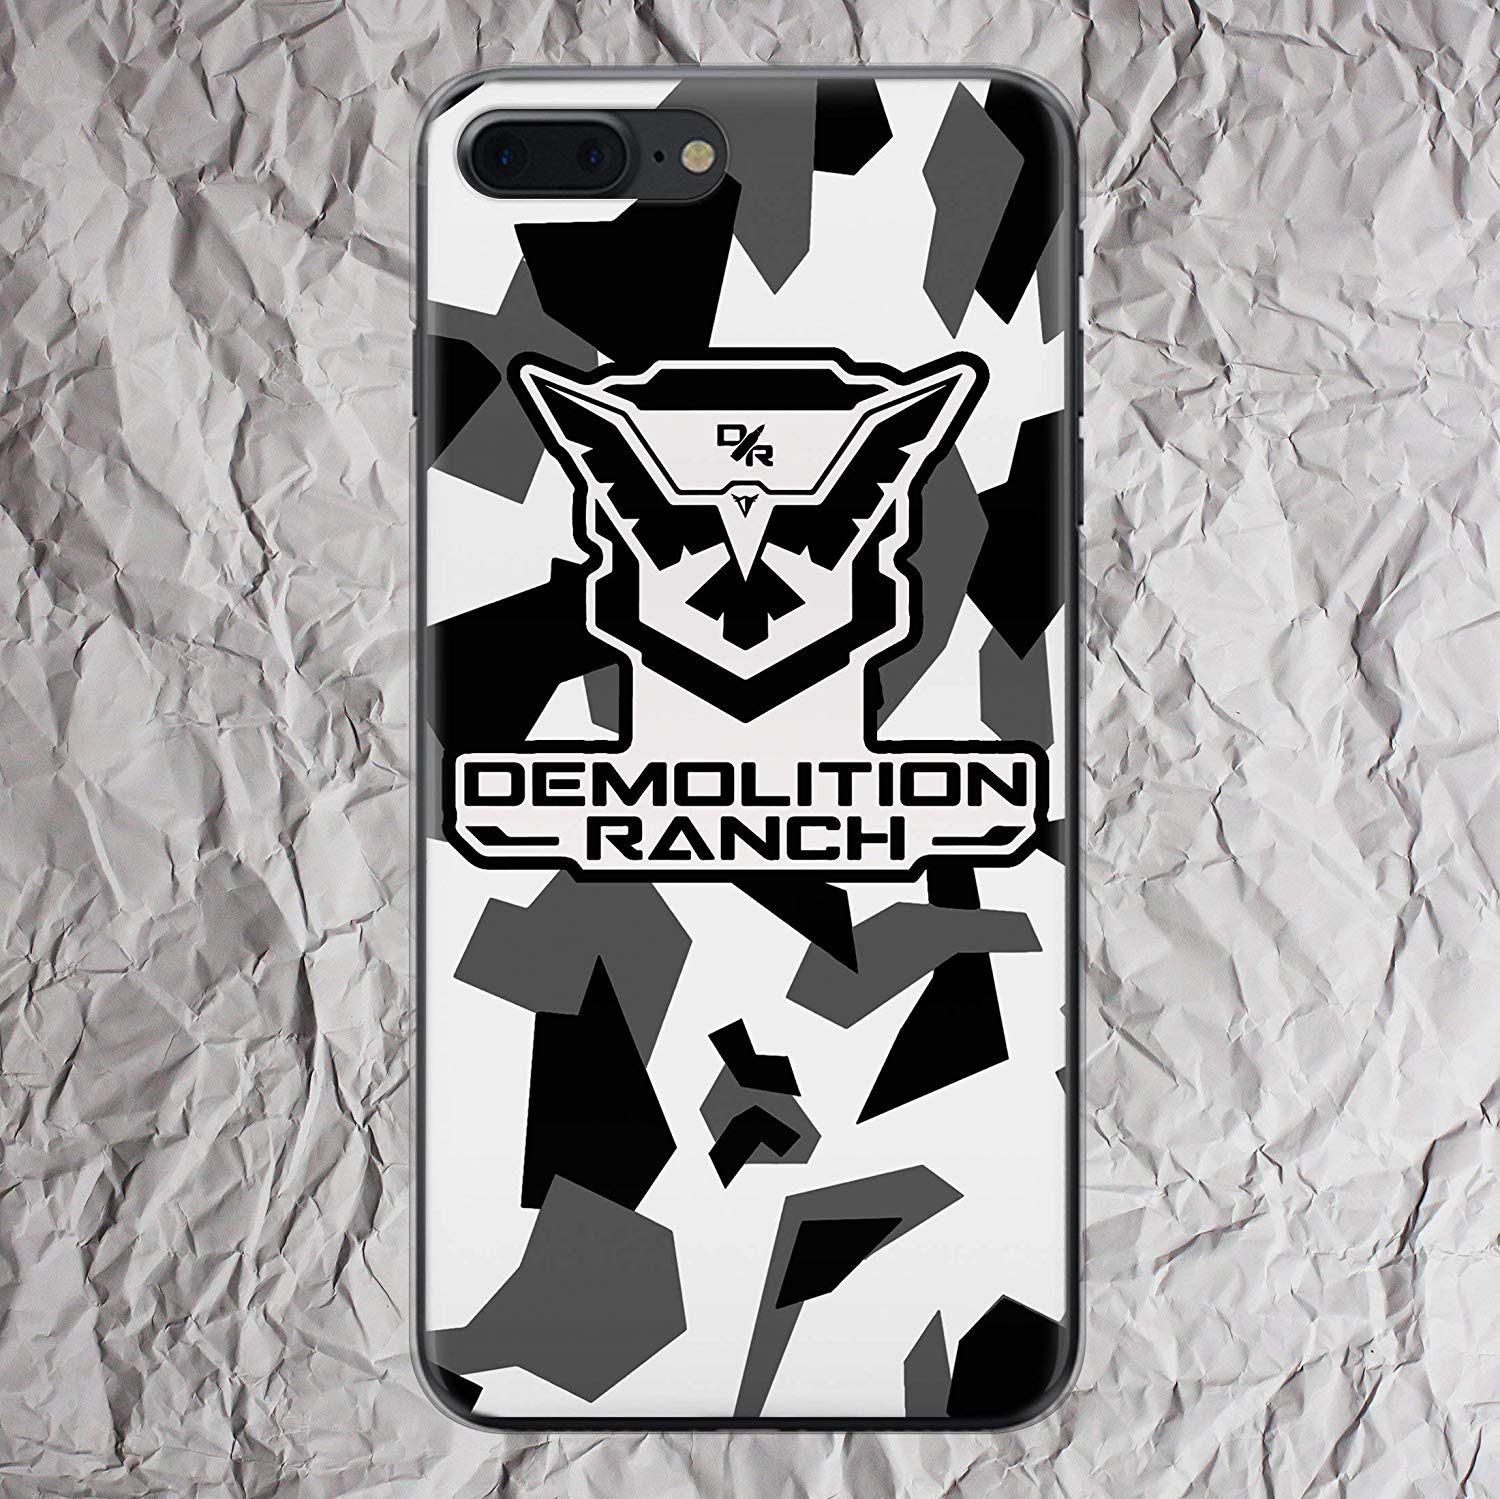 Demolition ranch iPhone X Xs Max Xr 8 7 6s 6 Plus se 5se 5 5s 5c 4s 4 Case  Fandom Gifts for Cell i Phone Silicone TPU Cover.